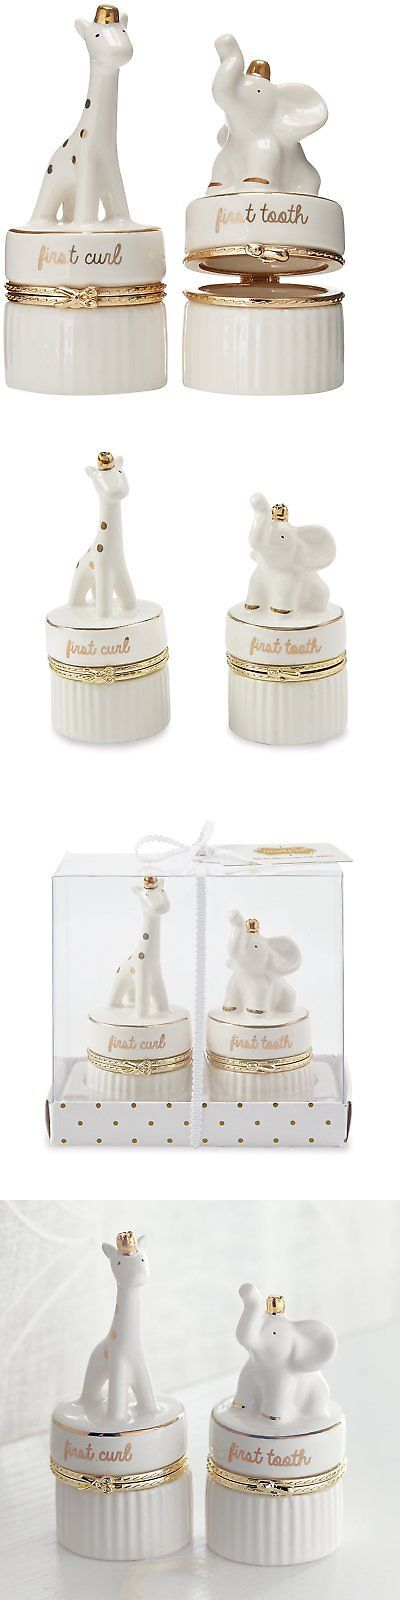 Baby Boxes 117390: Mud Pie Giraffe And Elephant Ceramic Tooth And Curl Set, White Gold -> BUY IT NOW ONLY: $34.08 on eBay!